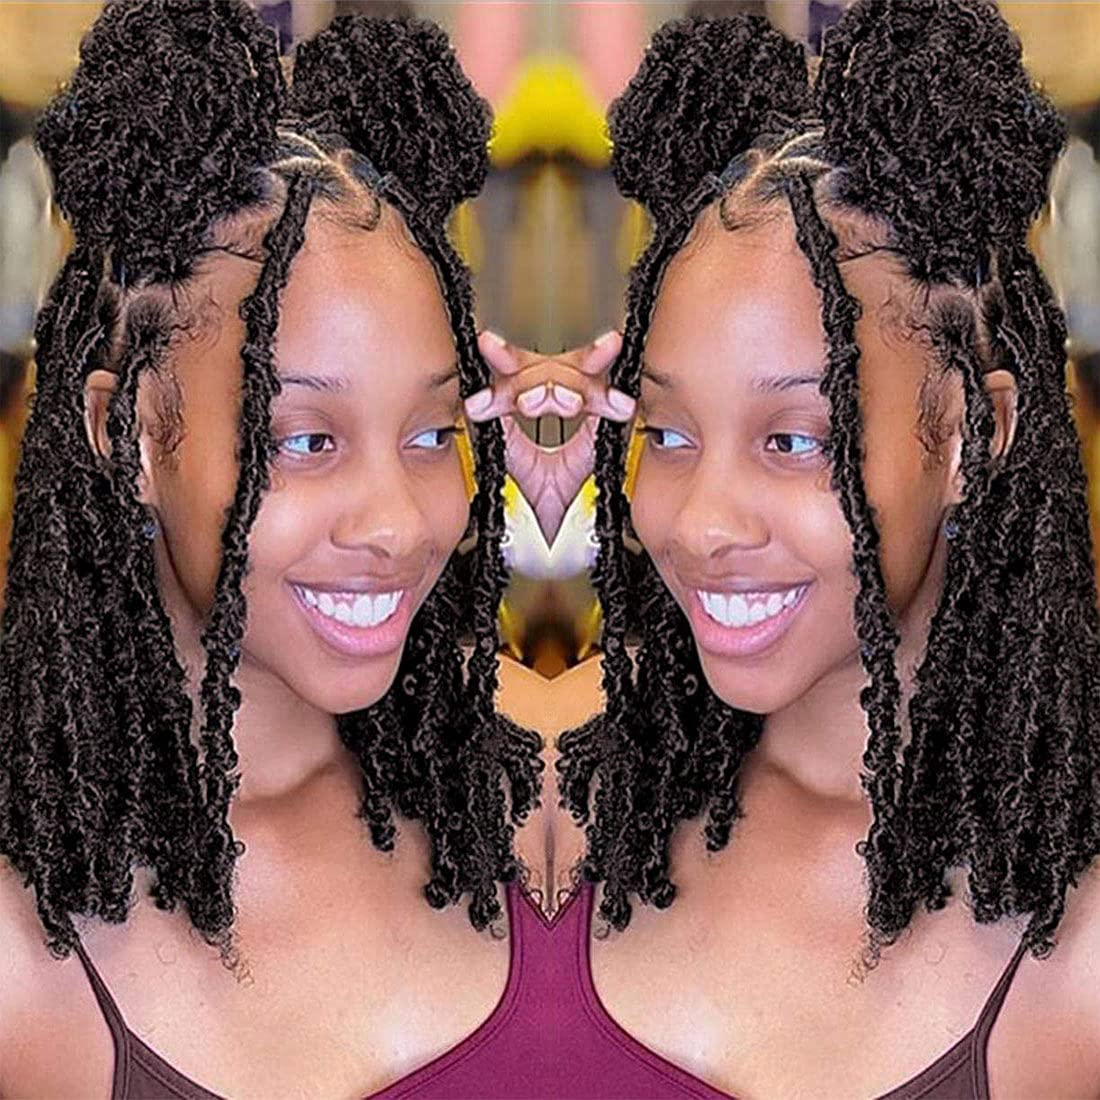 Free Shipping New Butterfly Locs Crochet Hair 12inch 6 Short Looped Packs 67% OFF of fixed price Dist Pre